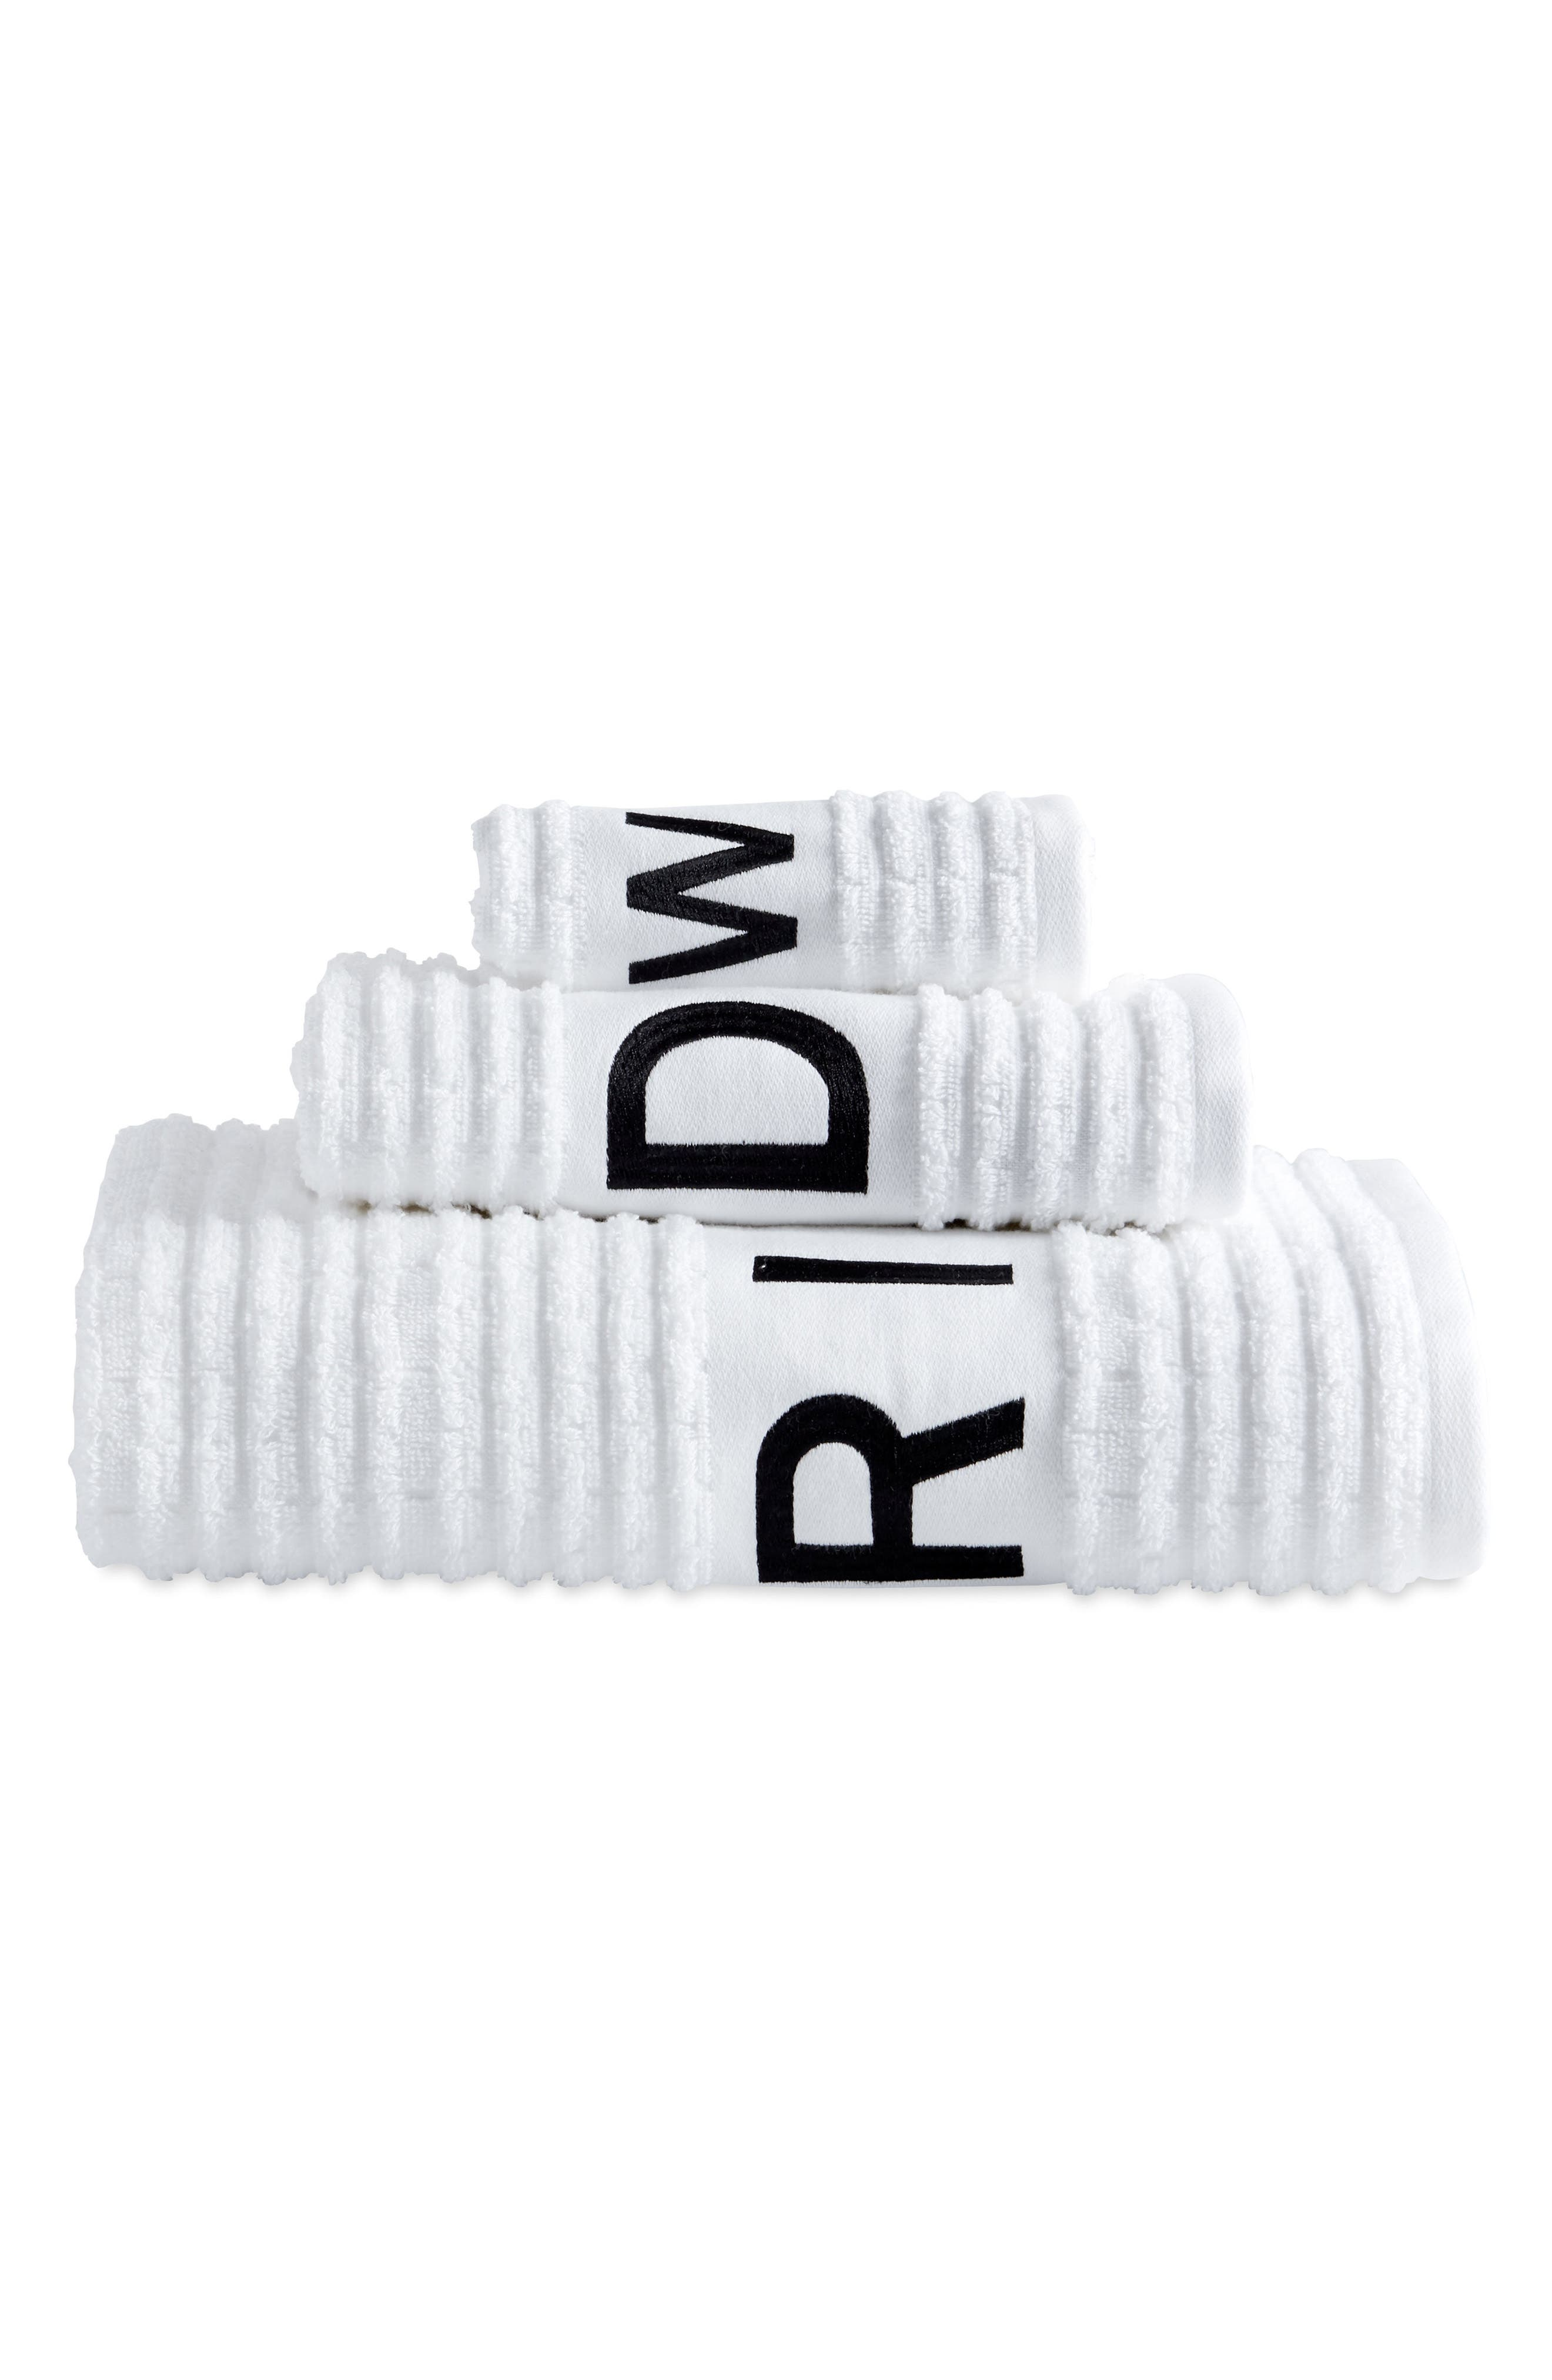 Alternate Image 1 Selected - DKNY Chatter Set of 3 Towels